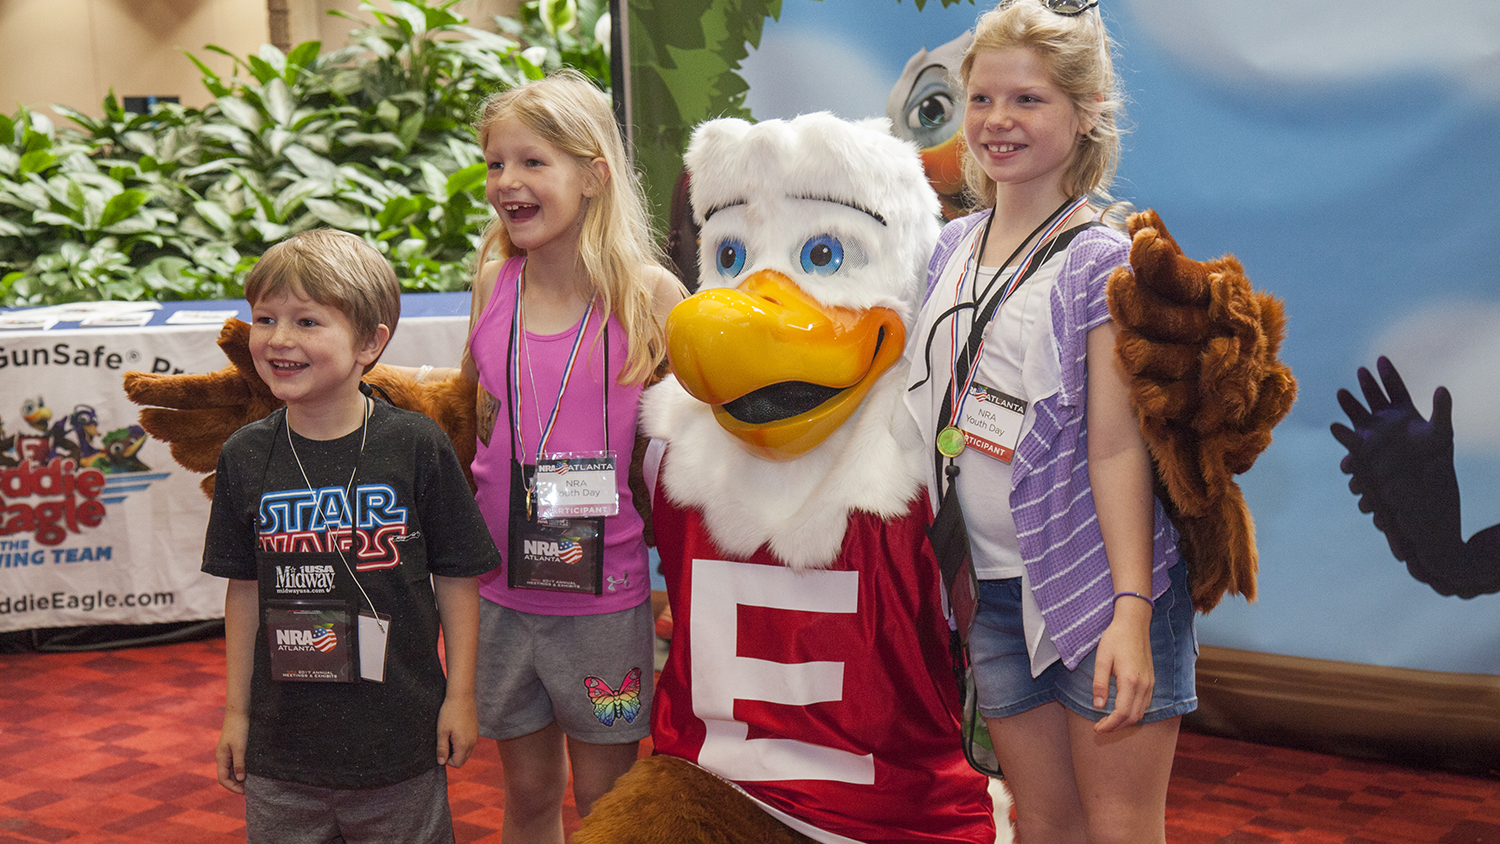 Celebrate with Eddie Eagle at NRA Annual Meetings!